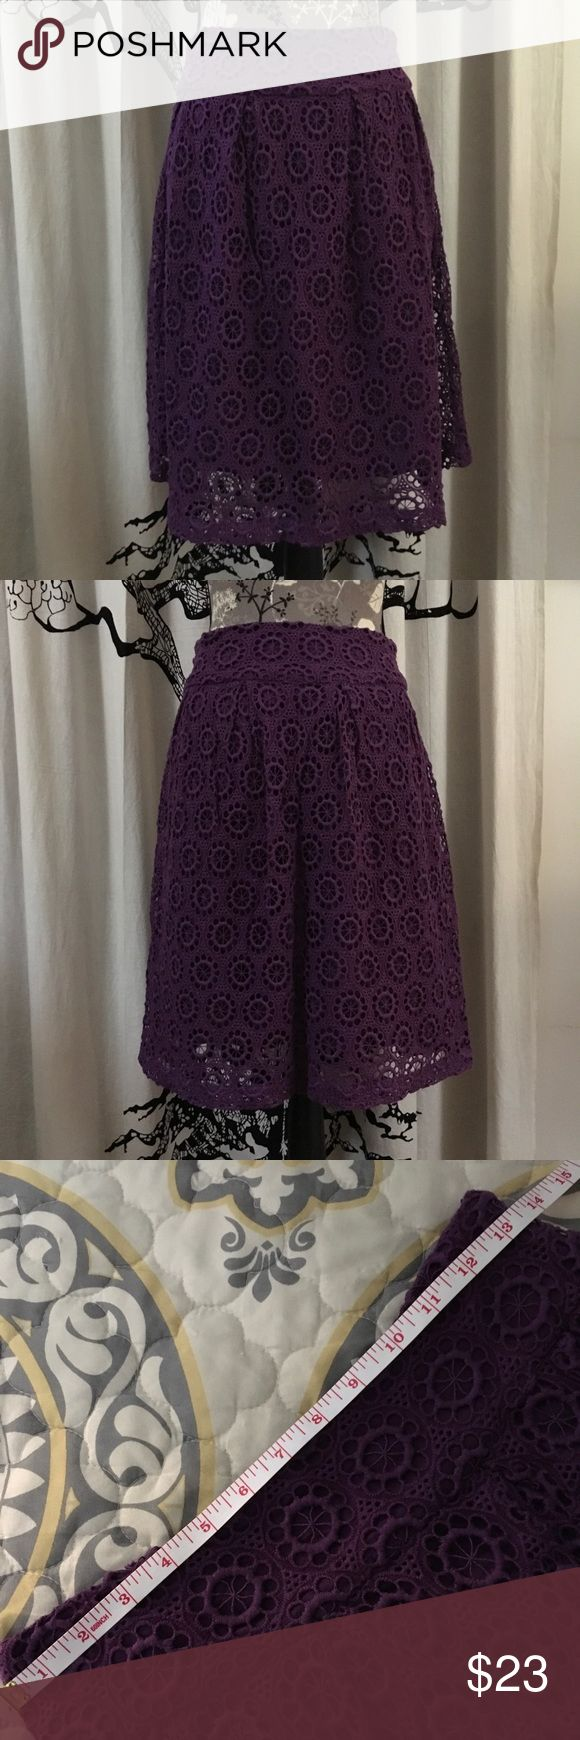 Garnet Hill Tatted Lace Skirt SZ 4/6 Gorgeous tatted lace (looks kind of like crochet) skirt by Garnet Hill in plum. Lined with hidden side zip. Wide flattering waistband. Perfect, like new condition. SZ 4 but could fit a smaller SZ 6 if you sometimes wear a 4.  **MEASUREMENTS IN ADDITIONAL PHOTOS** Garnet Hill Skirts Midi